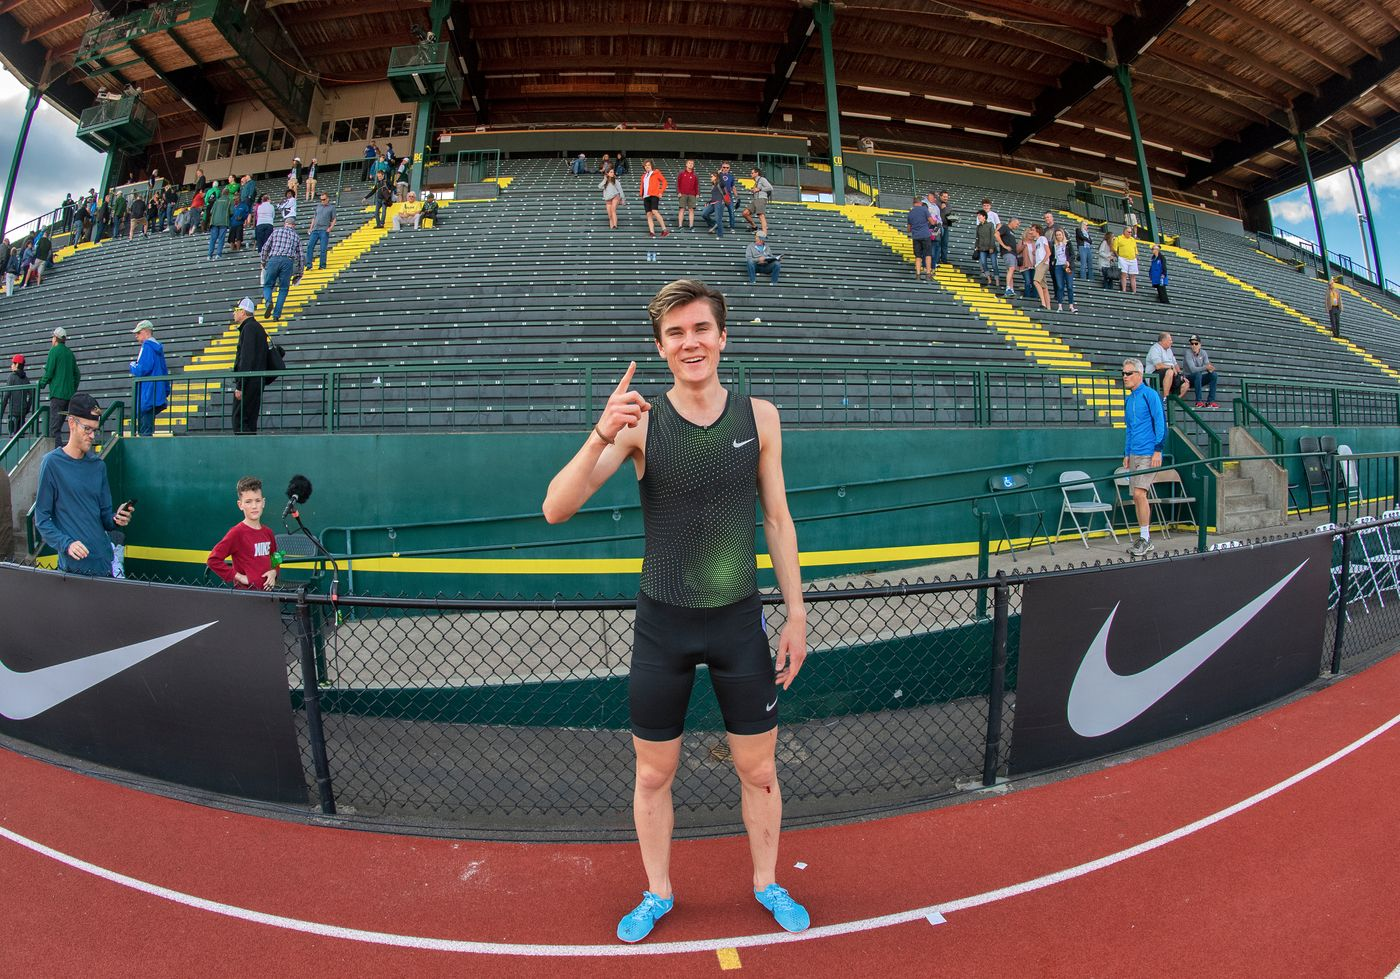 ingebrigtsen jakob wr 2018  pre classic day 3676  jeff cohen photo  .jpg